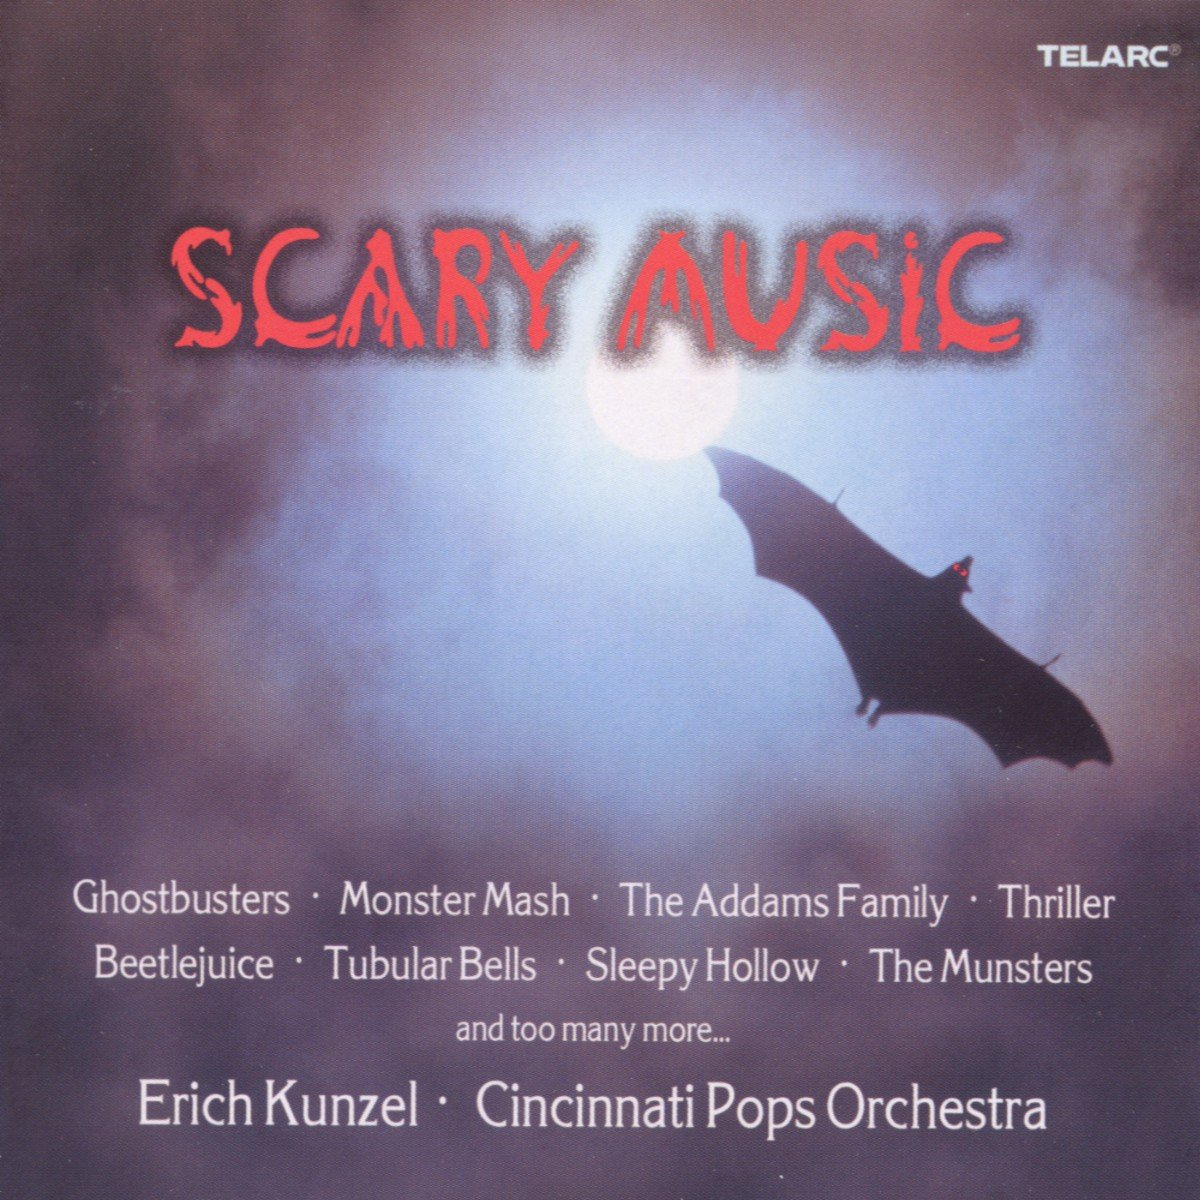 Scary Music by Telarc